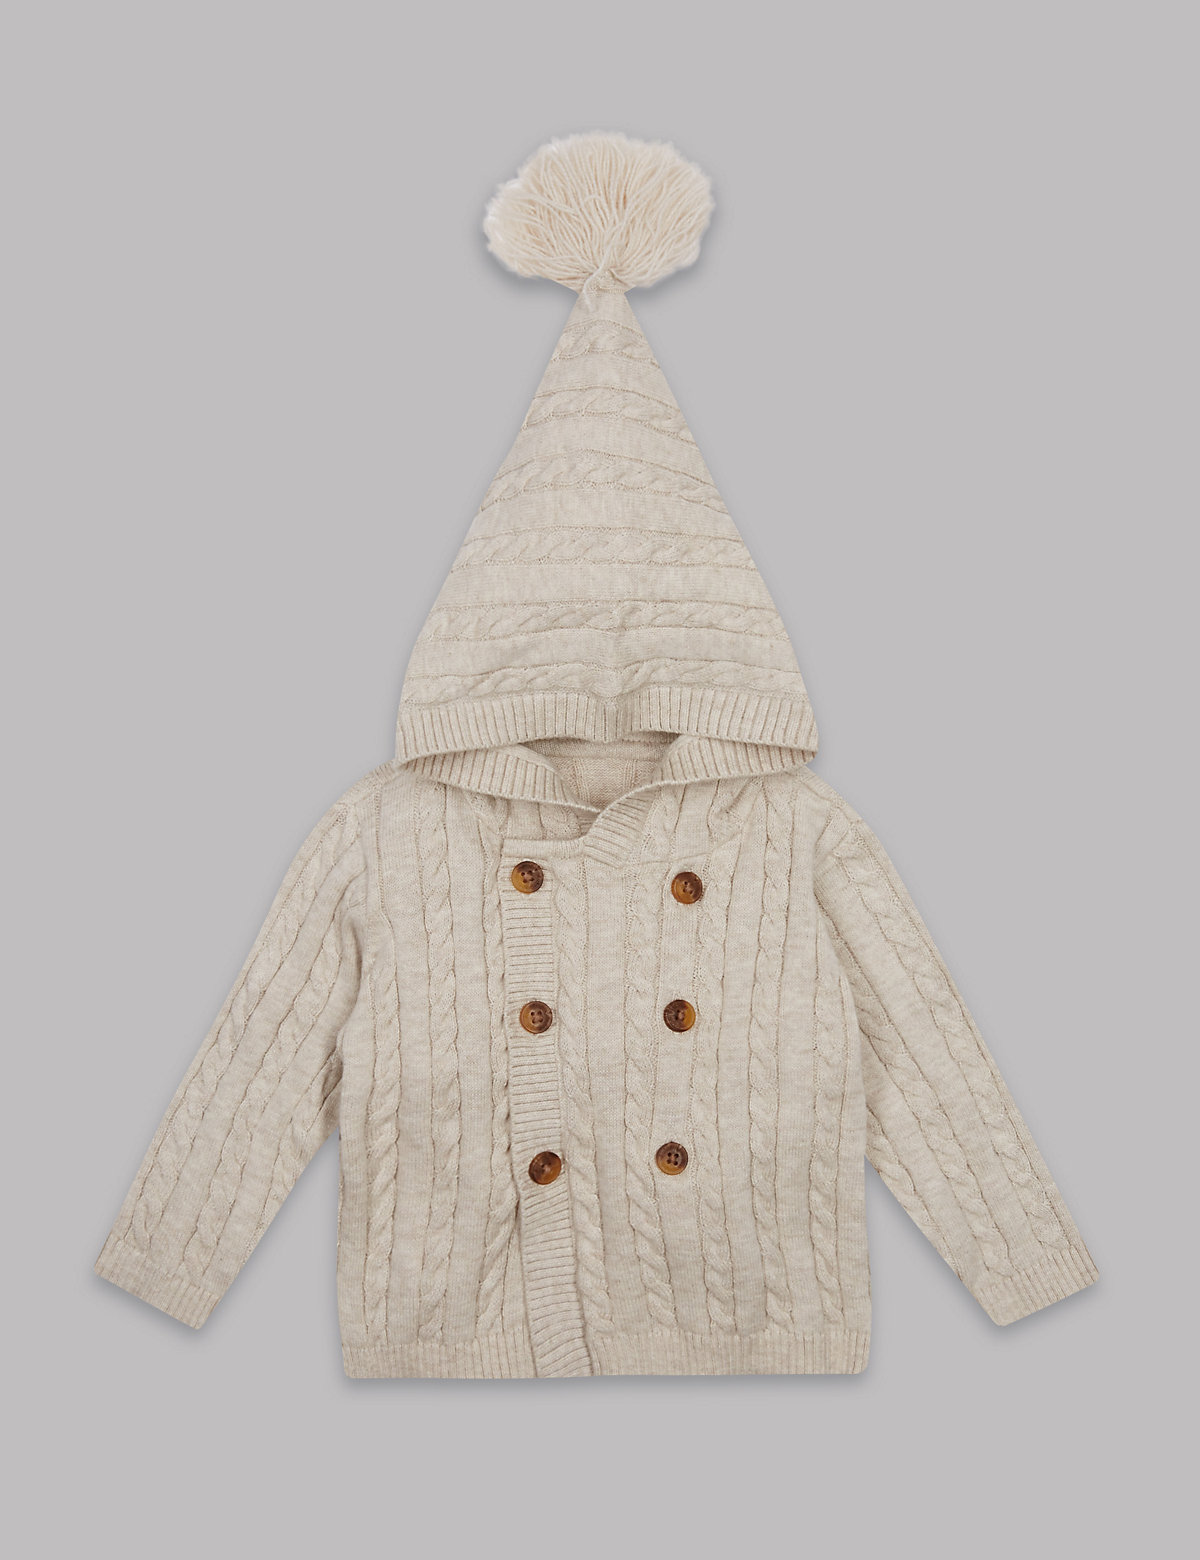 Autograph Pure Cotton Cable Knit Hooded Cardigan